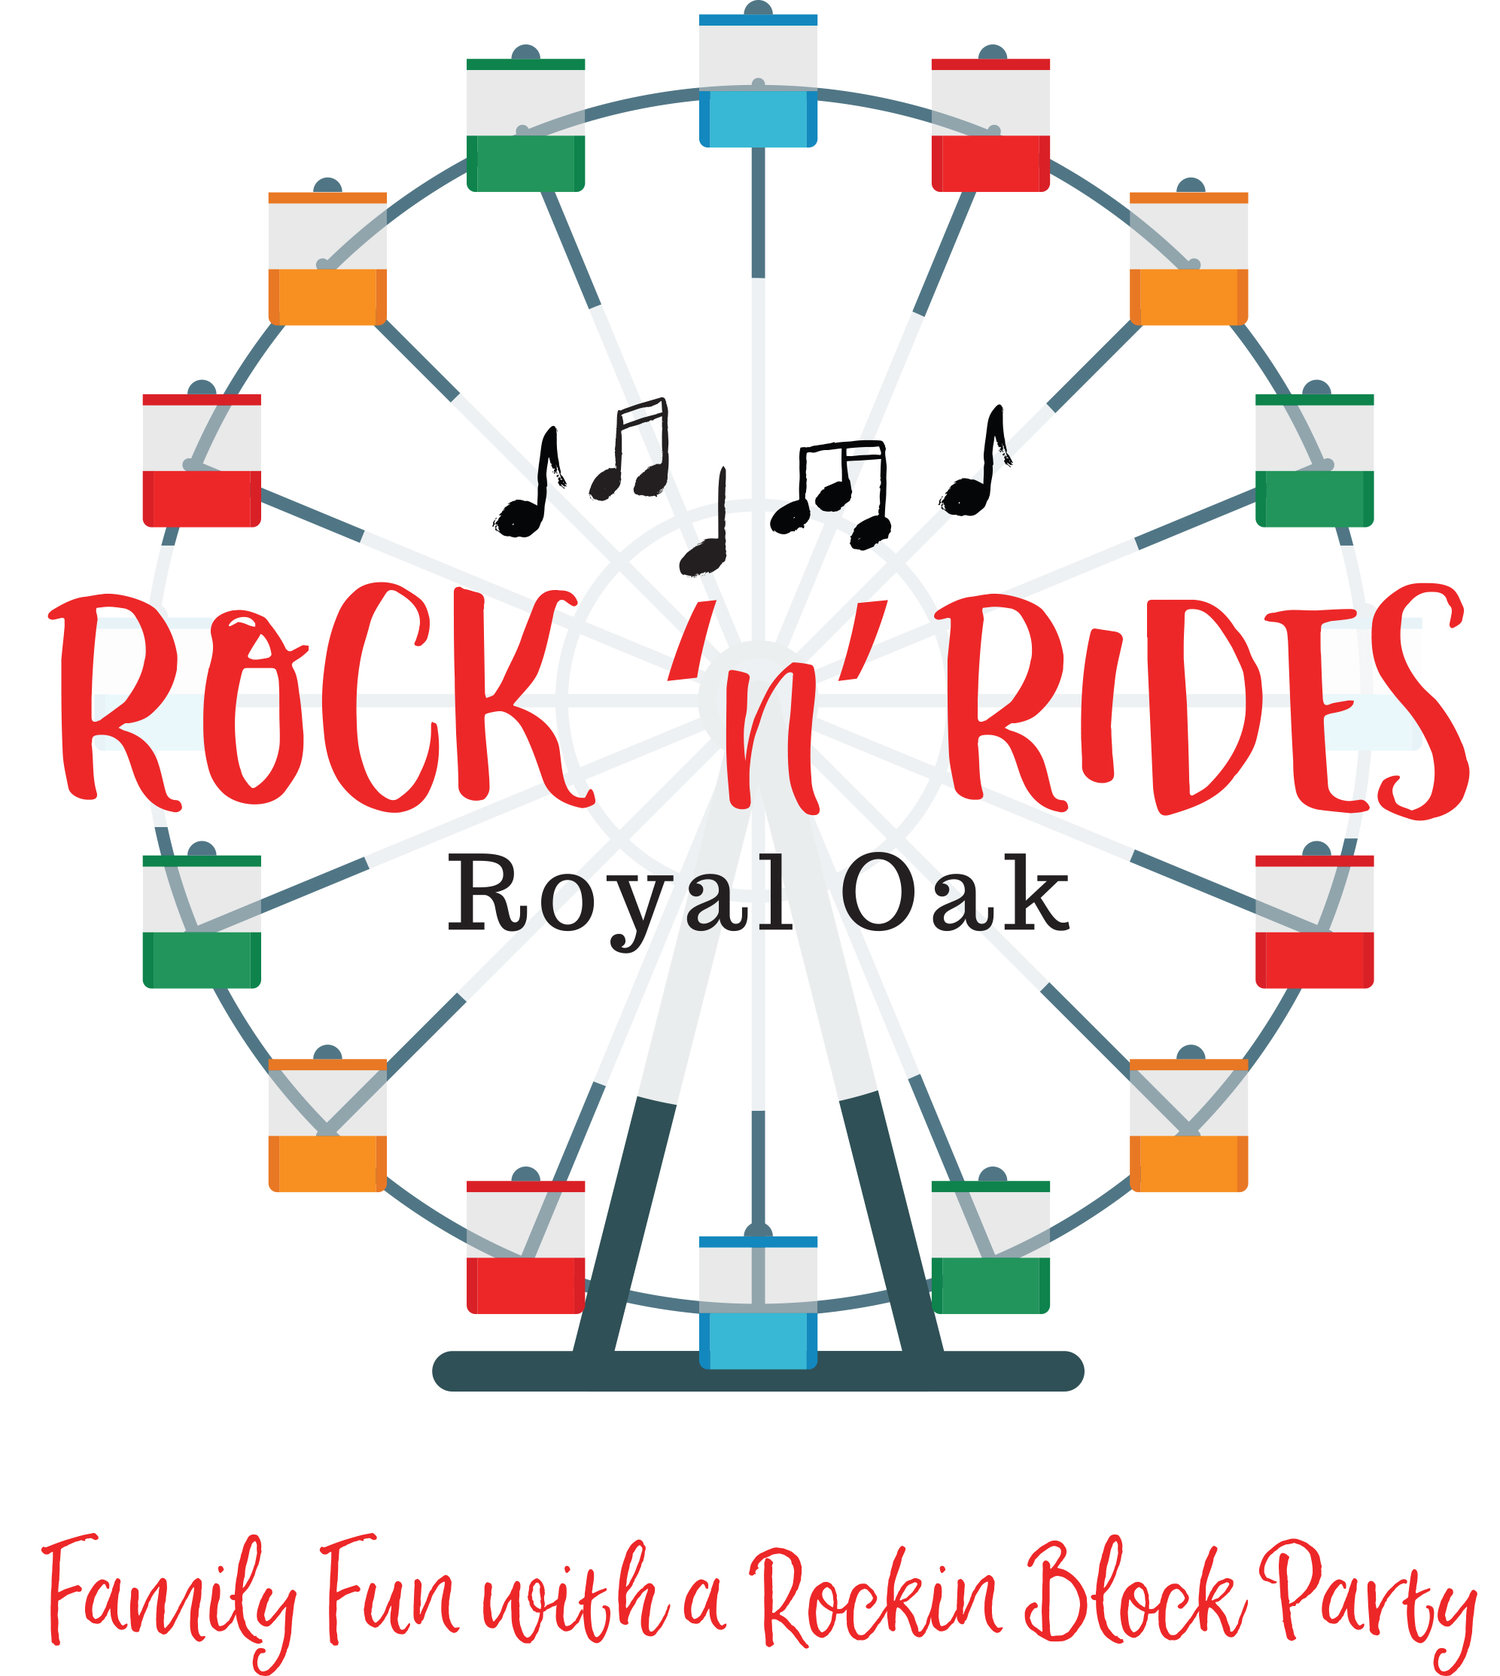 Rock 'n' Rides Royal Oak